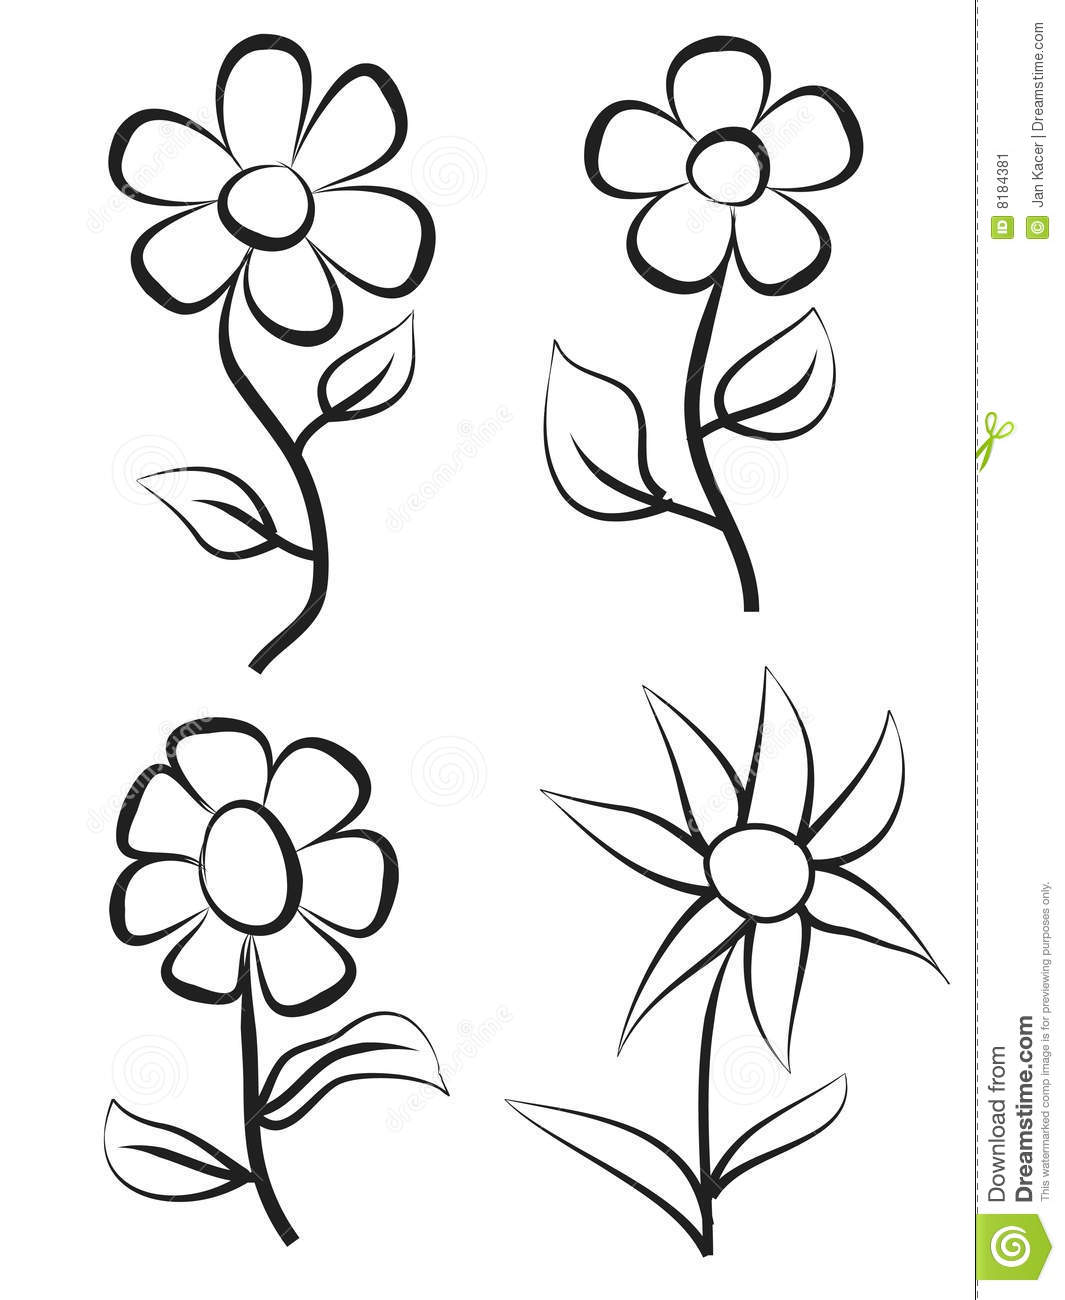 Hand Draw Flowers Stock Illustration Illustration Of Form 8184381